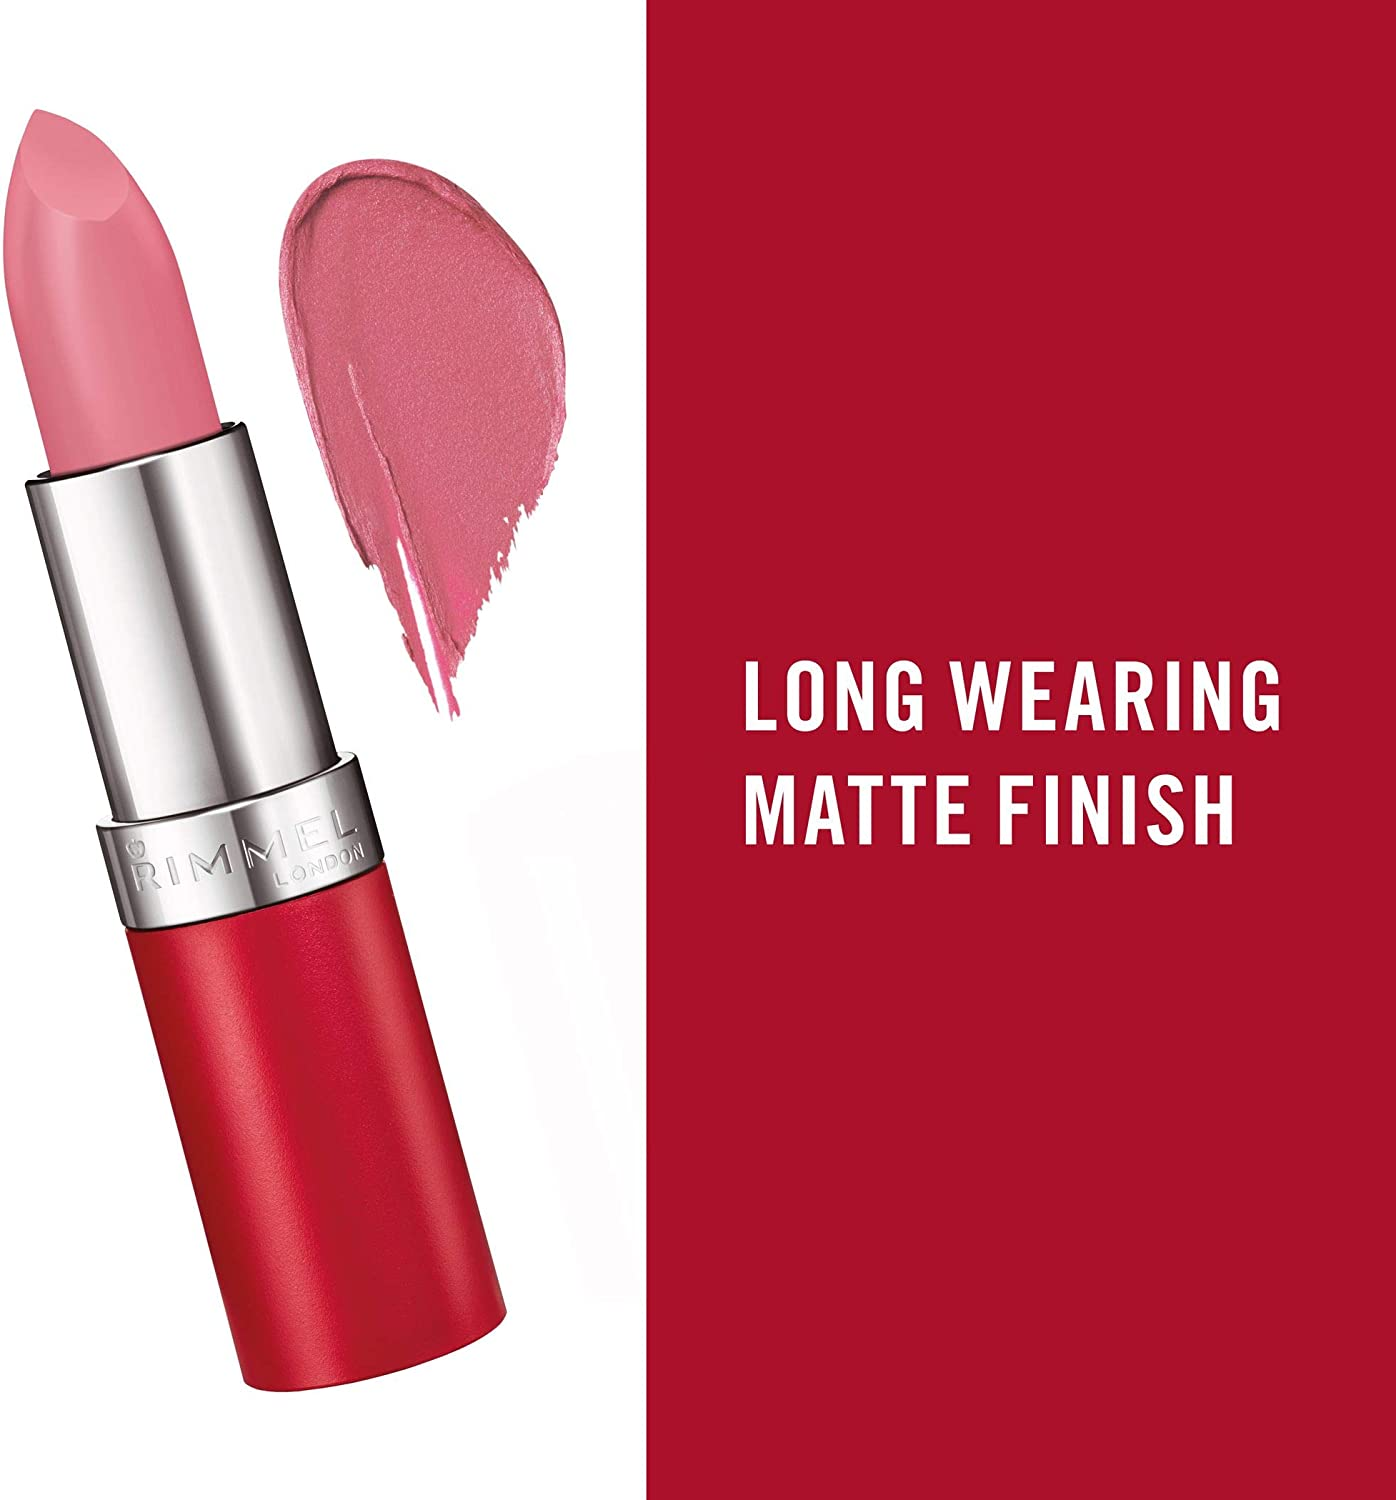 Rimmel London Lasting Finish Matte by Kate Barra De Labios Tono 101